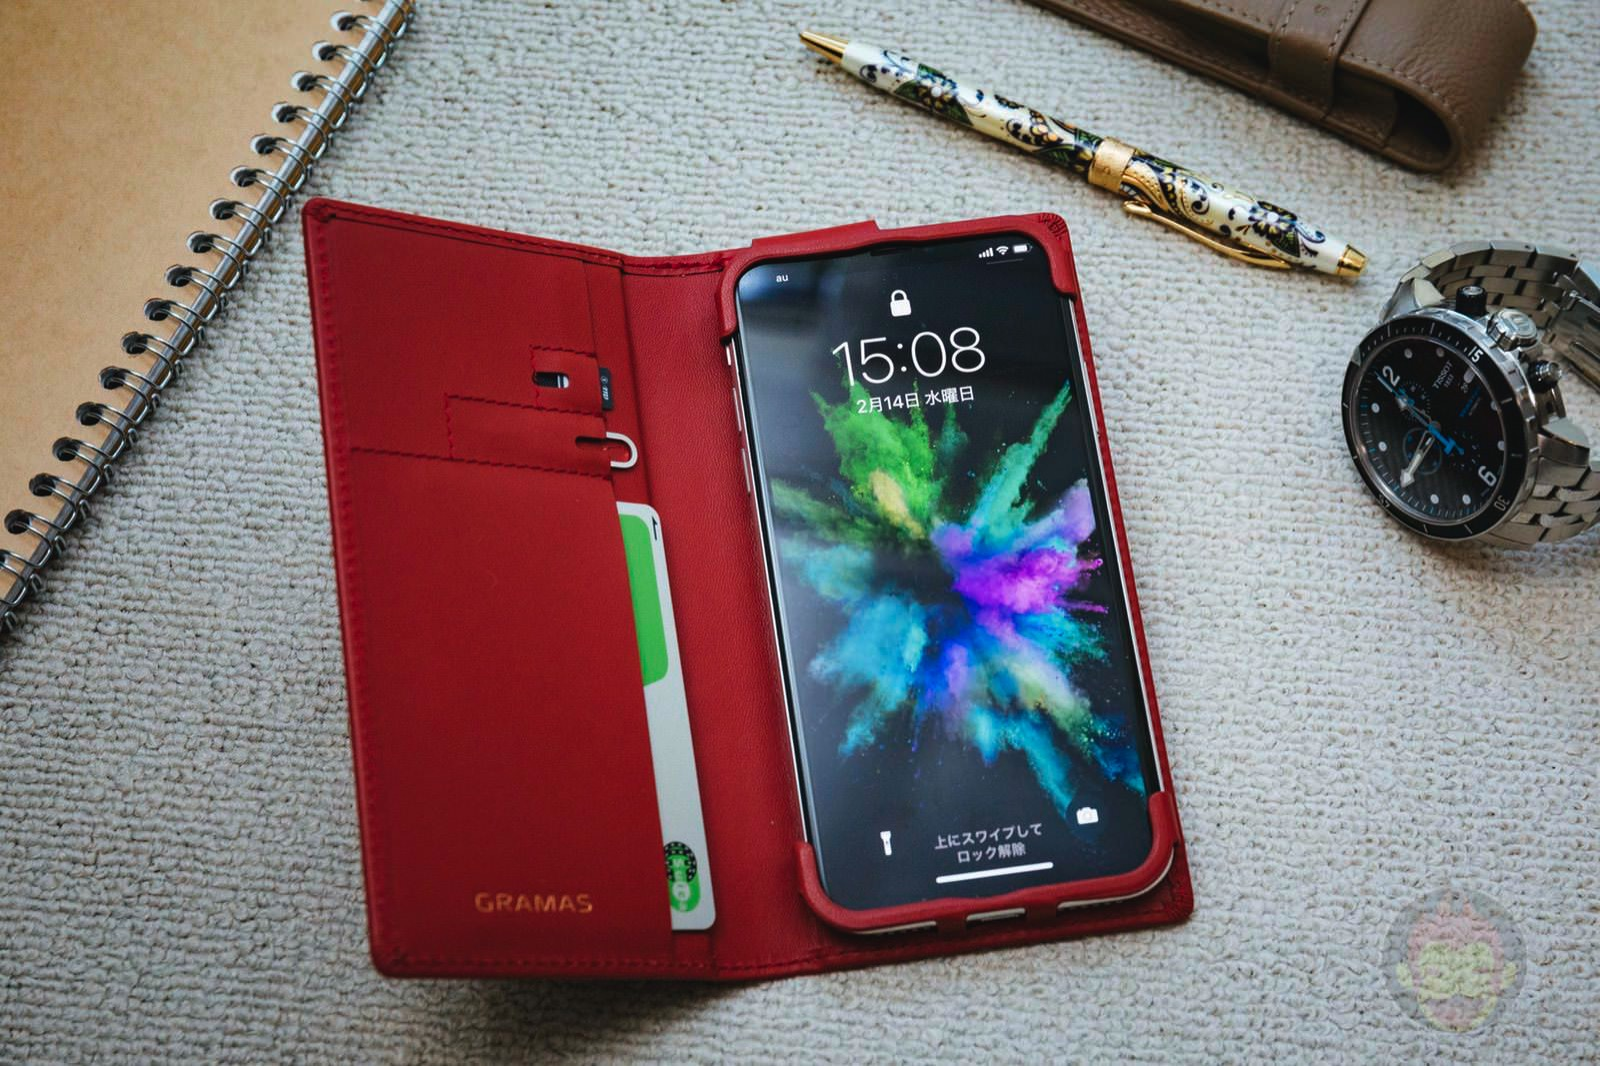 GRAMAS Full Leather Case Red for iPhoneX SIM PIN 01